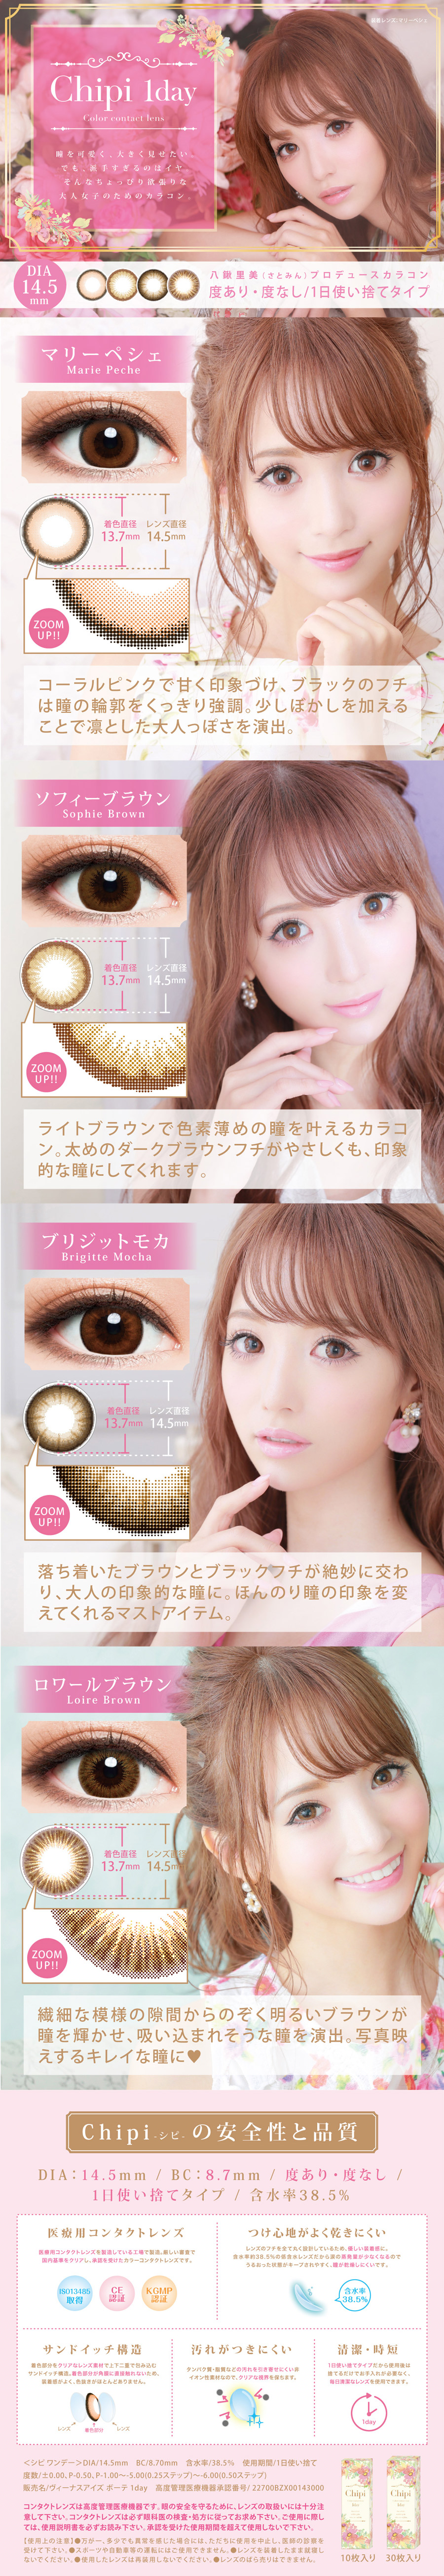 Chipi 1day【Color Contacts/1 Day/Prescription, No Prescription/30Lenses】